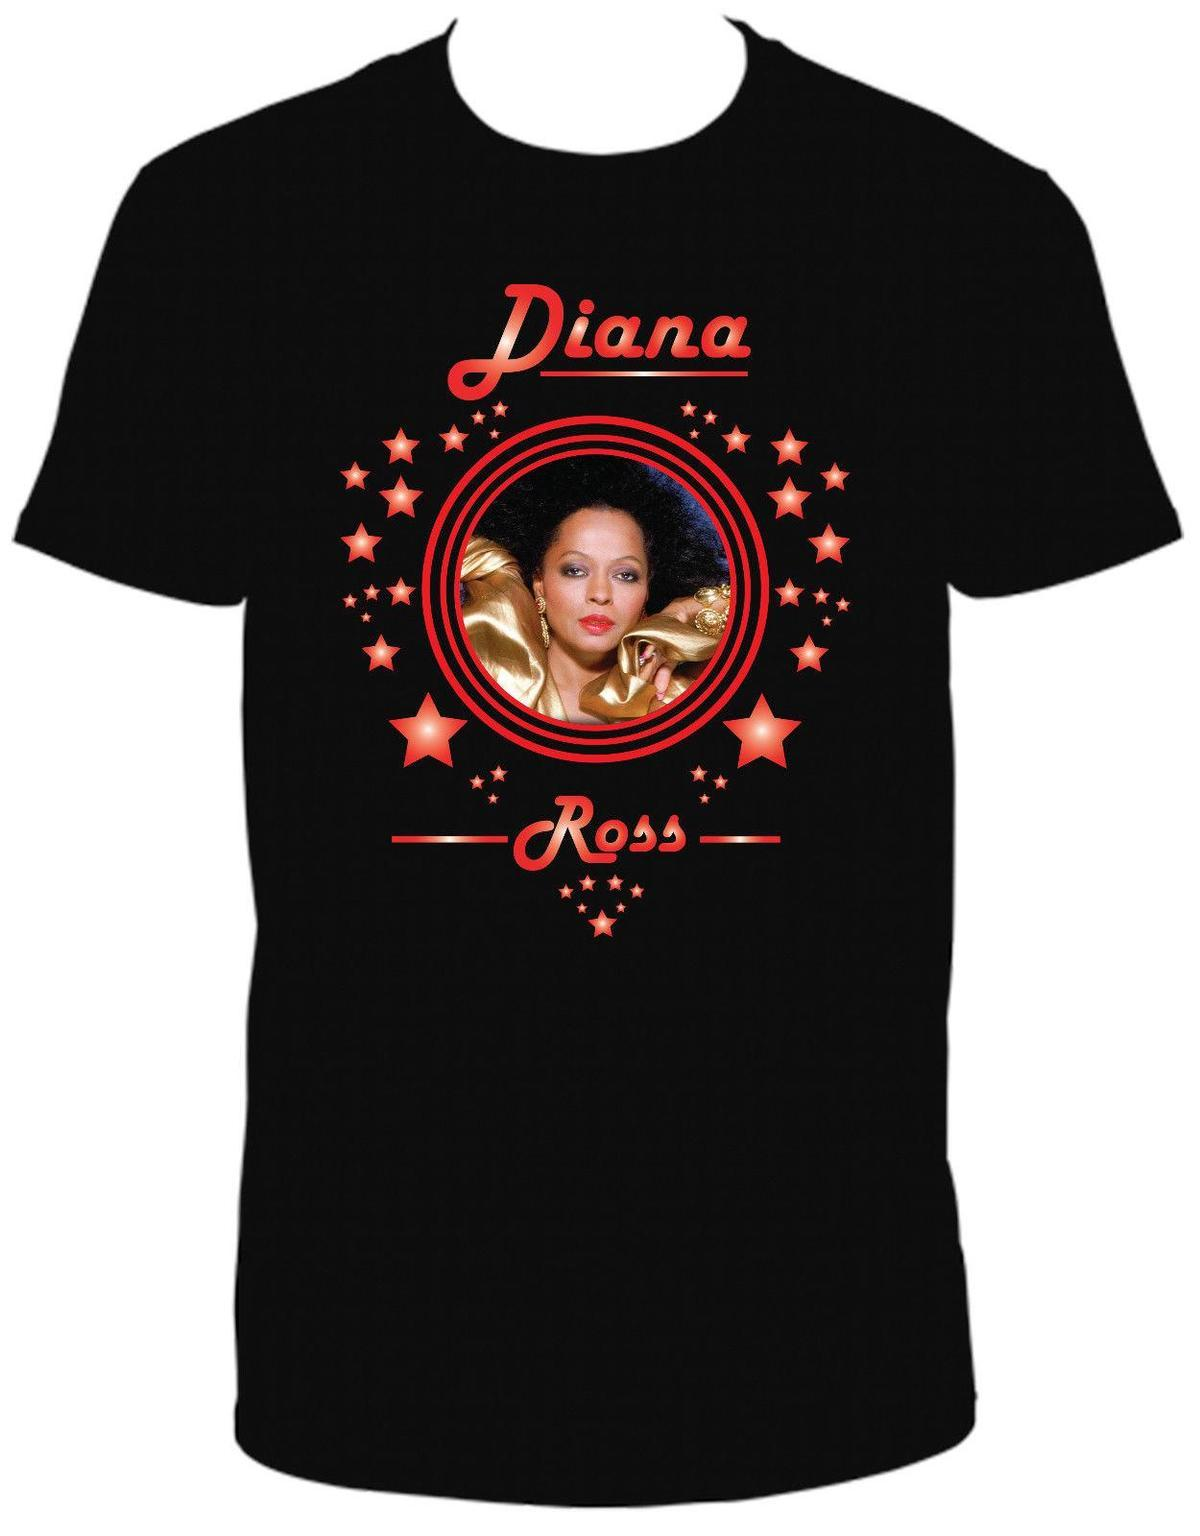 pretty cheap shoes for cheap hot sale online DIANA ROSS BLACK CREW NECK SHORT SLEEVE TSHIRT